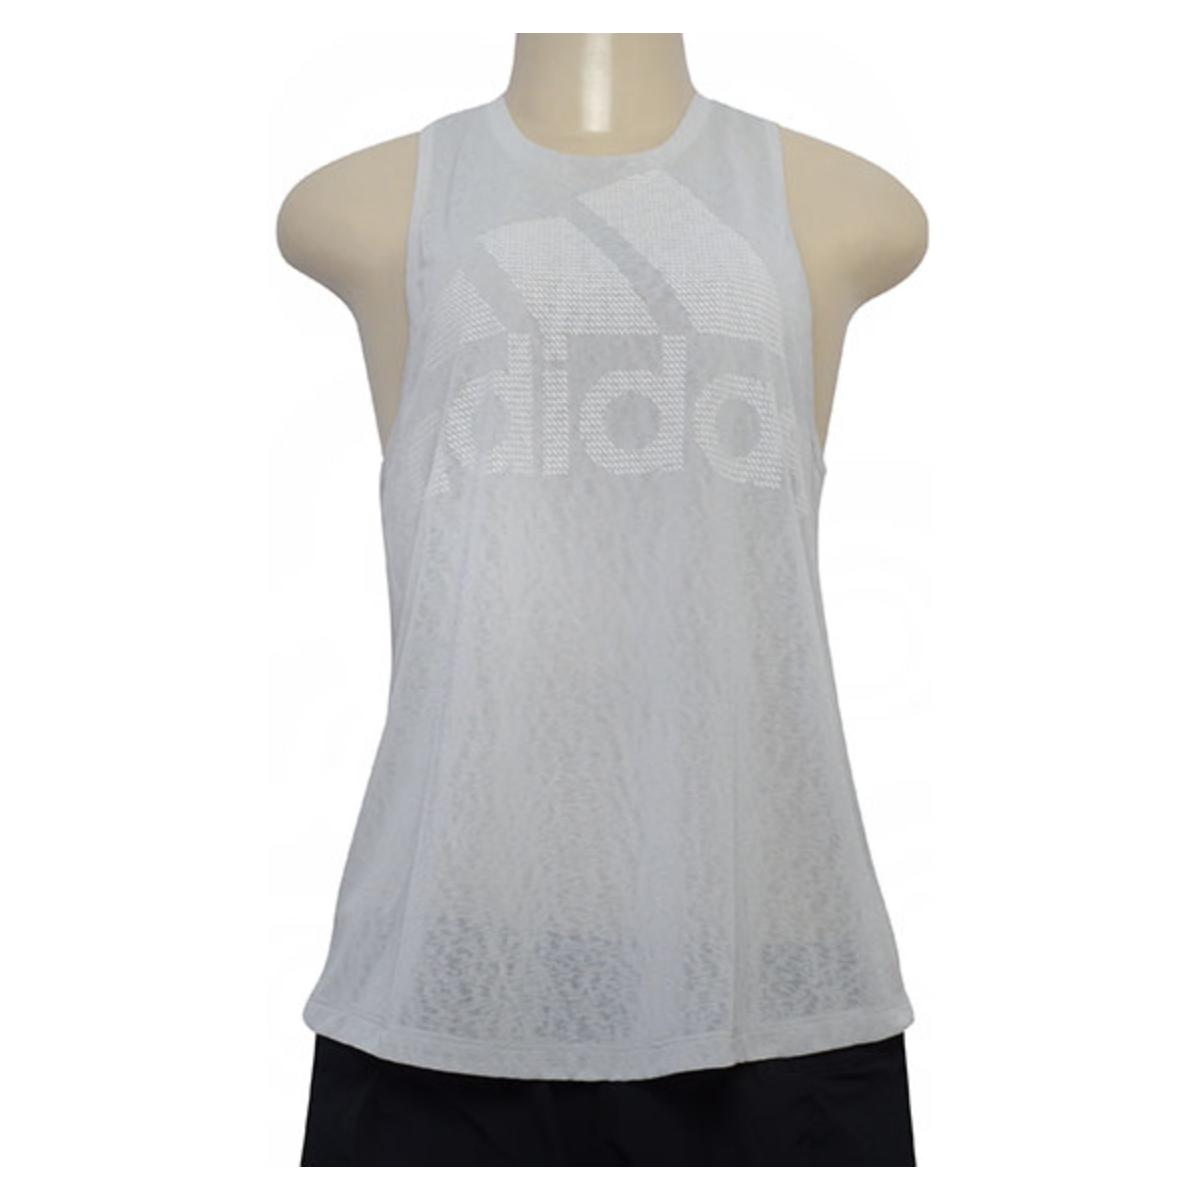 Regata Feminina Adidas Cz7887 Magic Logo Cinza